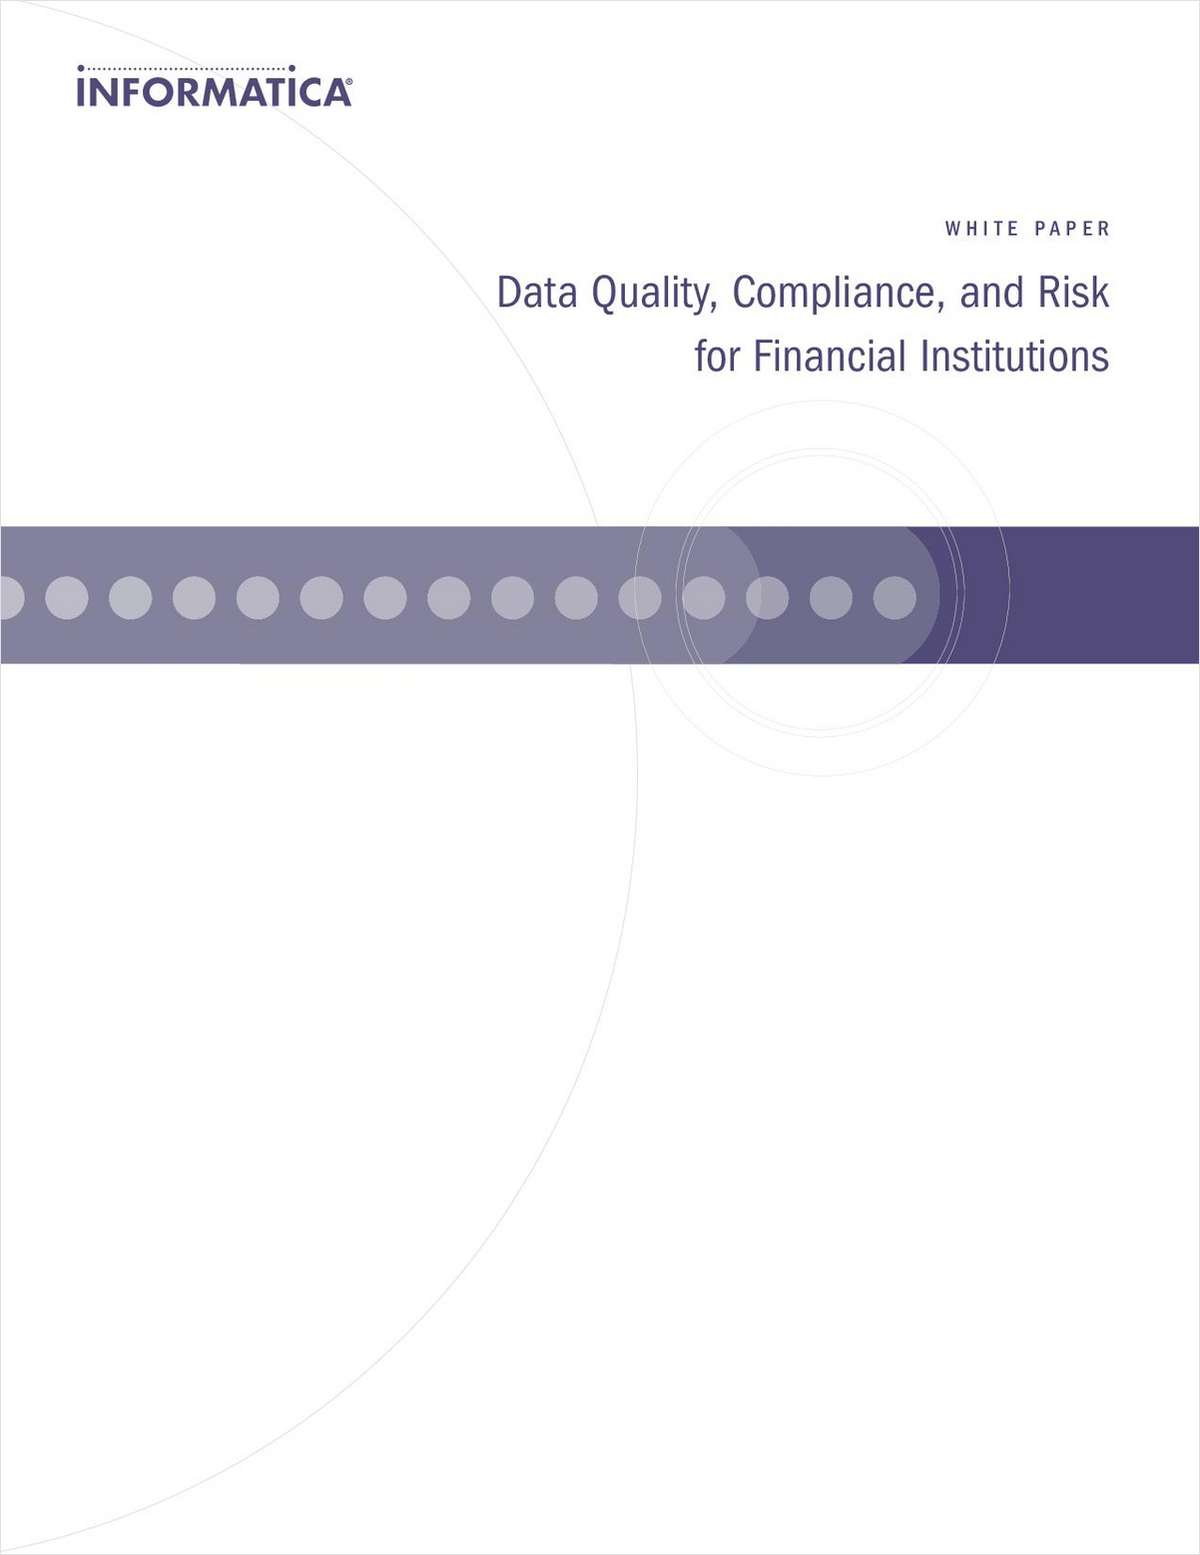 Data Quality, Compliance, and Risk for Financial Institutions